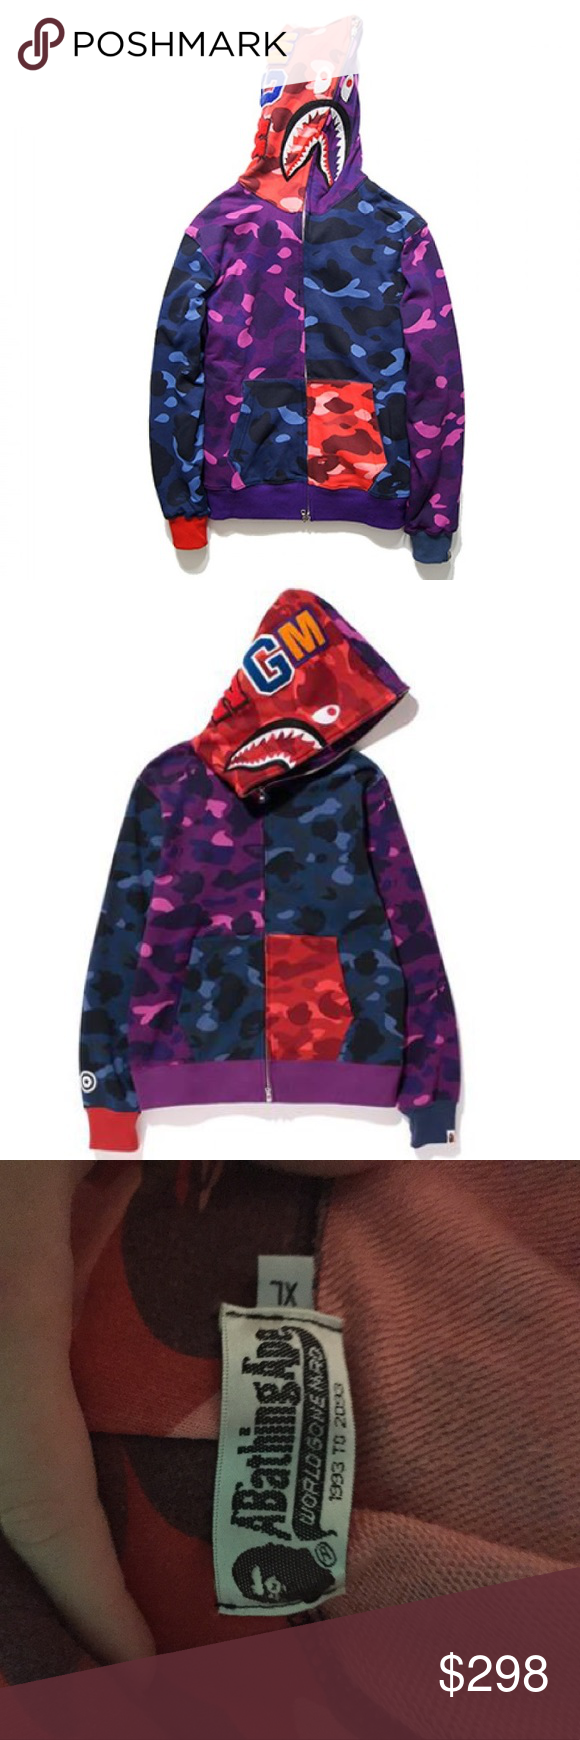 8877a816b363 BAPE Shark hoodie color camo crazy A bathing ape full Zip Up sweater.  Colorful camo. Great condition